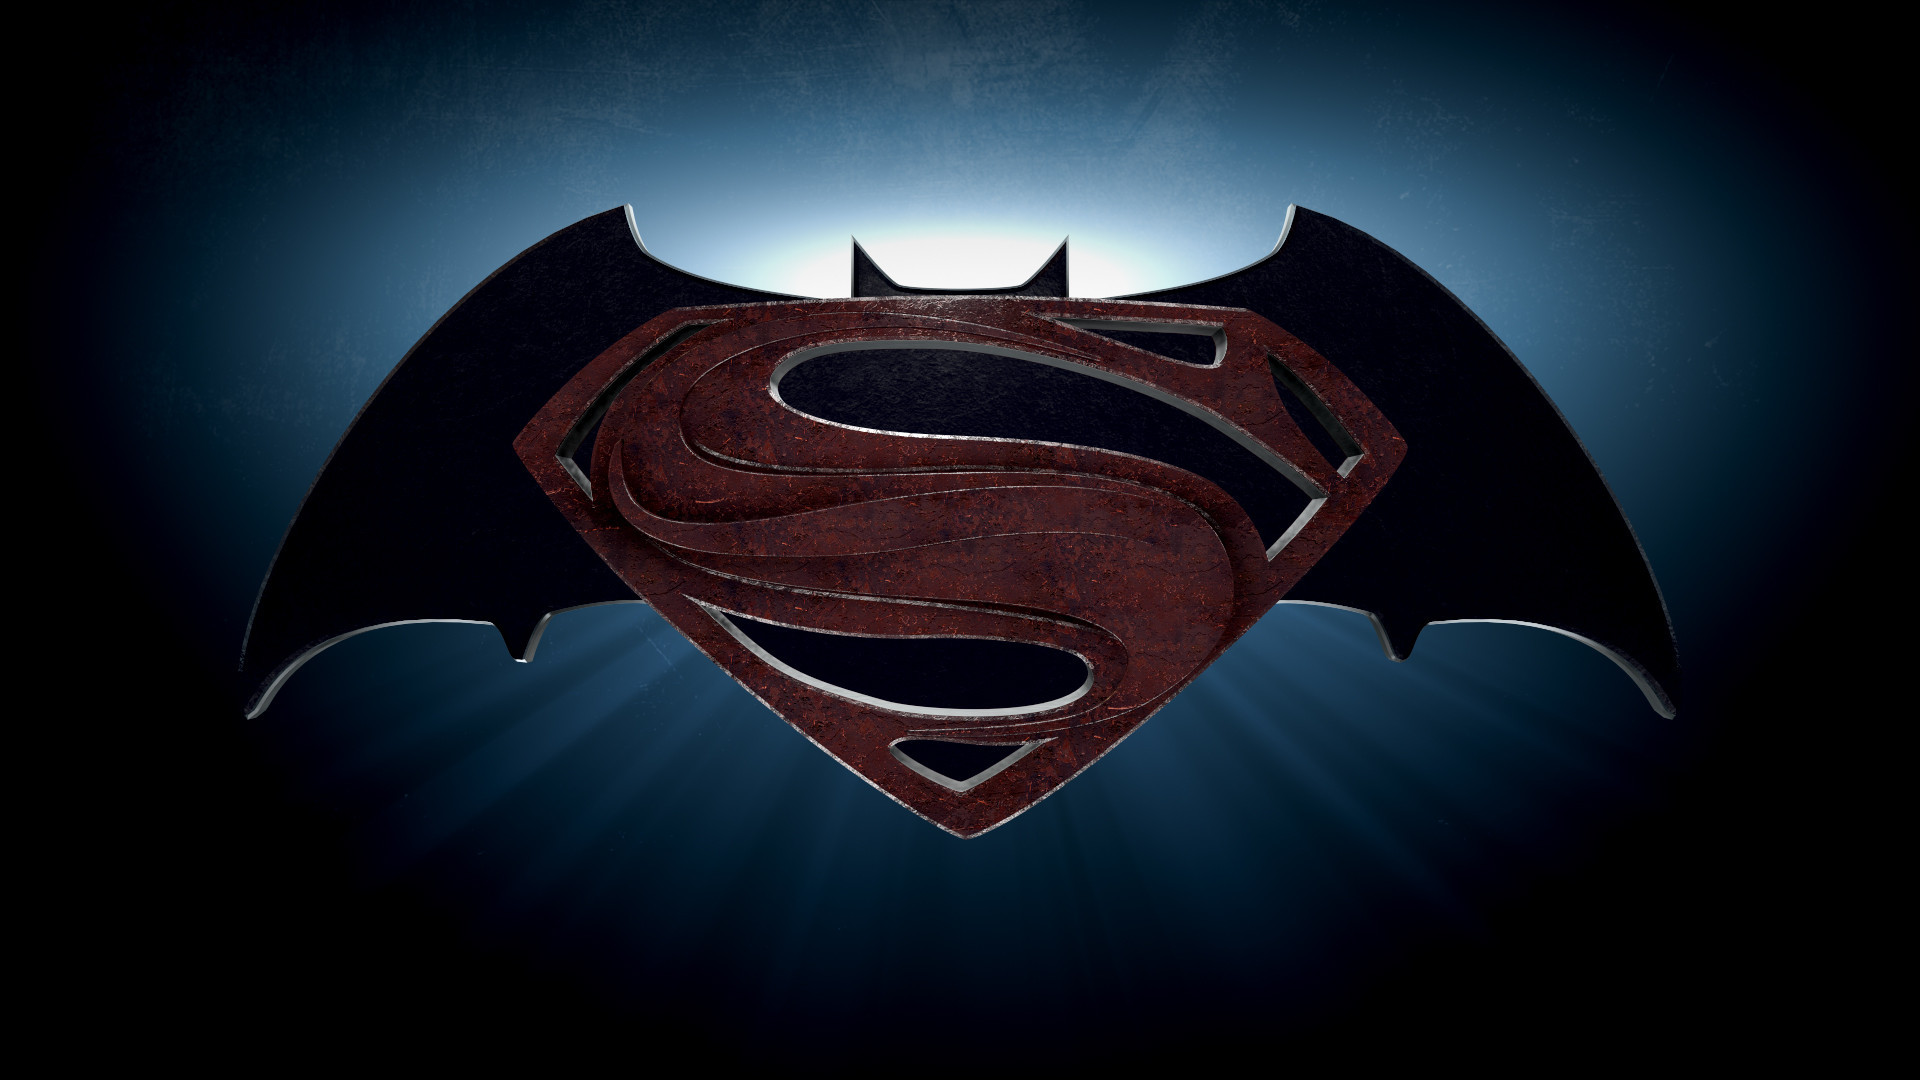 1920x1080 Batman v Superman 2015 Movie Logo HD Wallpaper - Stylish HD Wallpapers